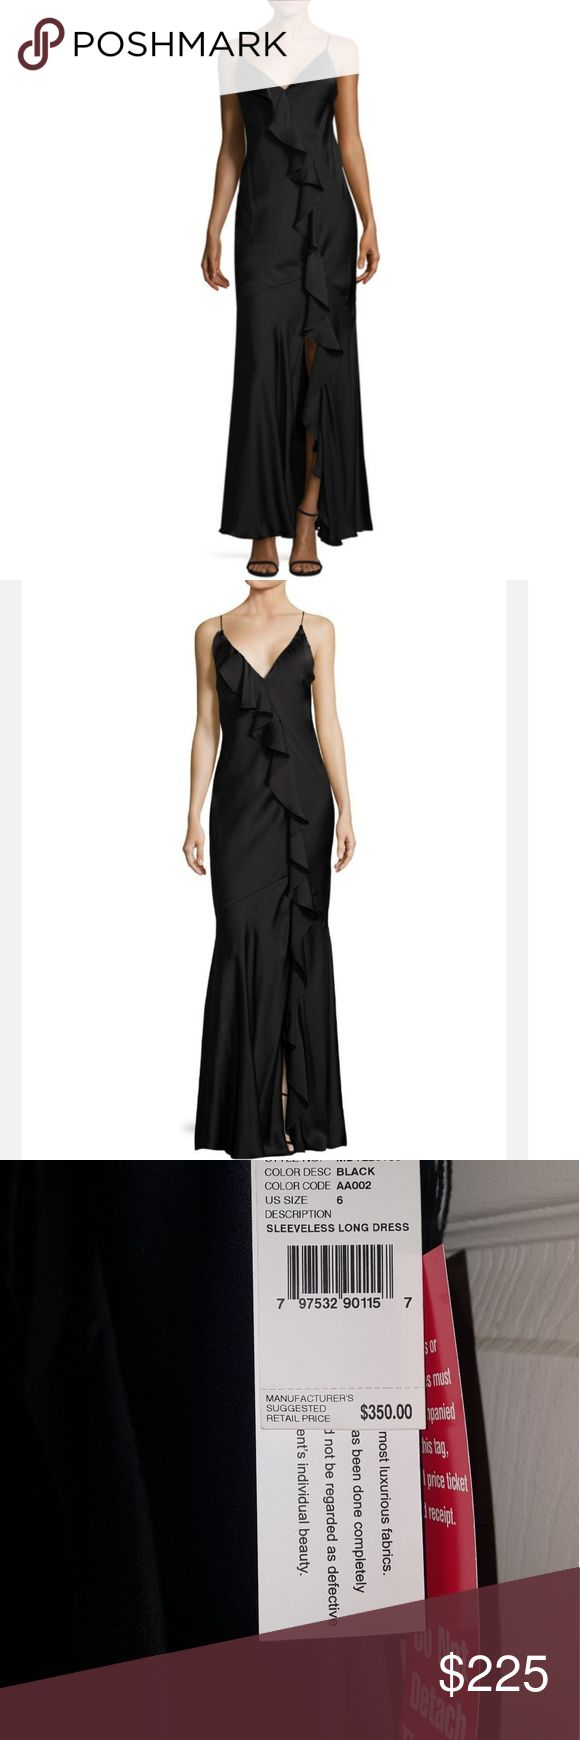 🌟JUST IN!🌟🆕AIDAN MATTOX WRAP DRESS AIDAN MATTOX RUFFLED WRAP LONG DRESS NEW WITH TAGS COLOR BLACK SIZE 6 SLEEVELESS, SPAGHETTI STRAPS WOVEN GOWN SWEETHEART NECK,RUFFLED DETAIL IN FRONT,OPEN BACK TONAL TOPSTITCHING & PANEL SEAMING GATHERED SPLIT HEM AT FRONT HIDDEN BACK ZIPPER, FULLY LINED SHELL/LINING 100% POLYESTER 🌟BEAUTIFUL CLASSY SIMPLE ELEGANT LONG DRESS🌟 *NO TRADES NO RETURNS* Aidan Mattox Dresses Backless